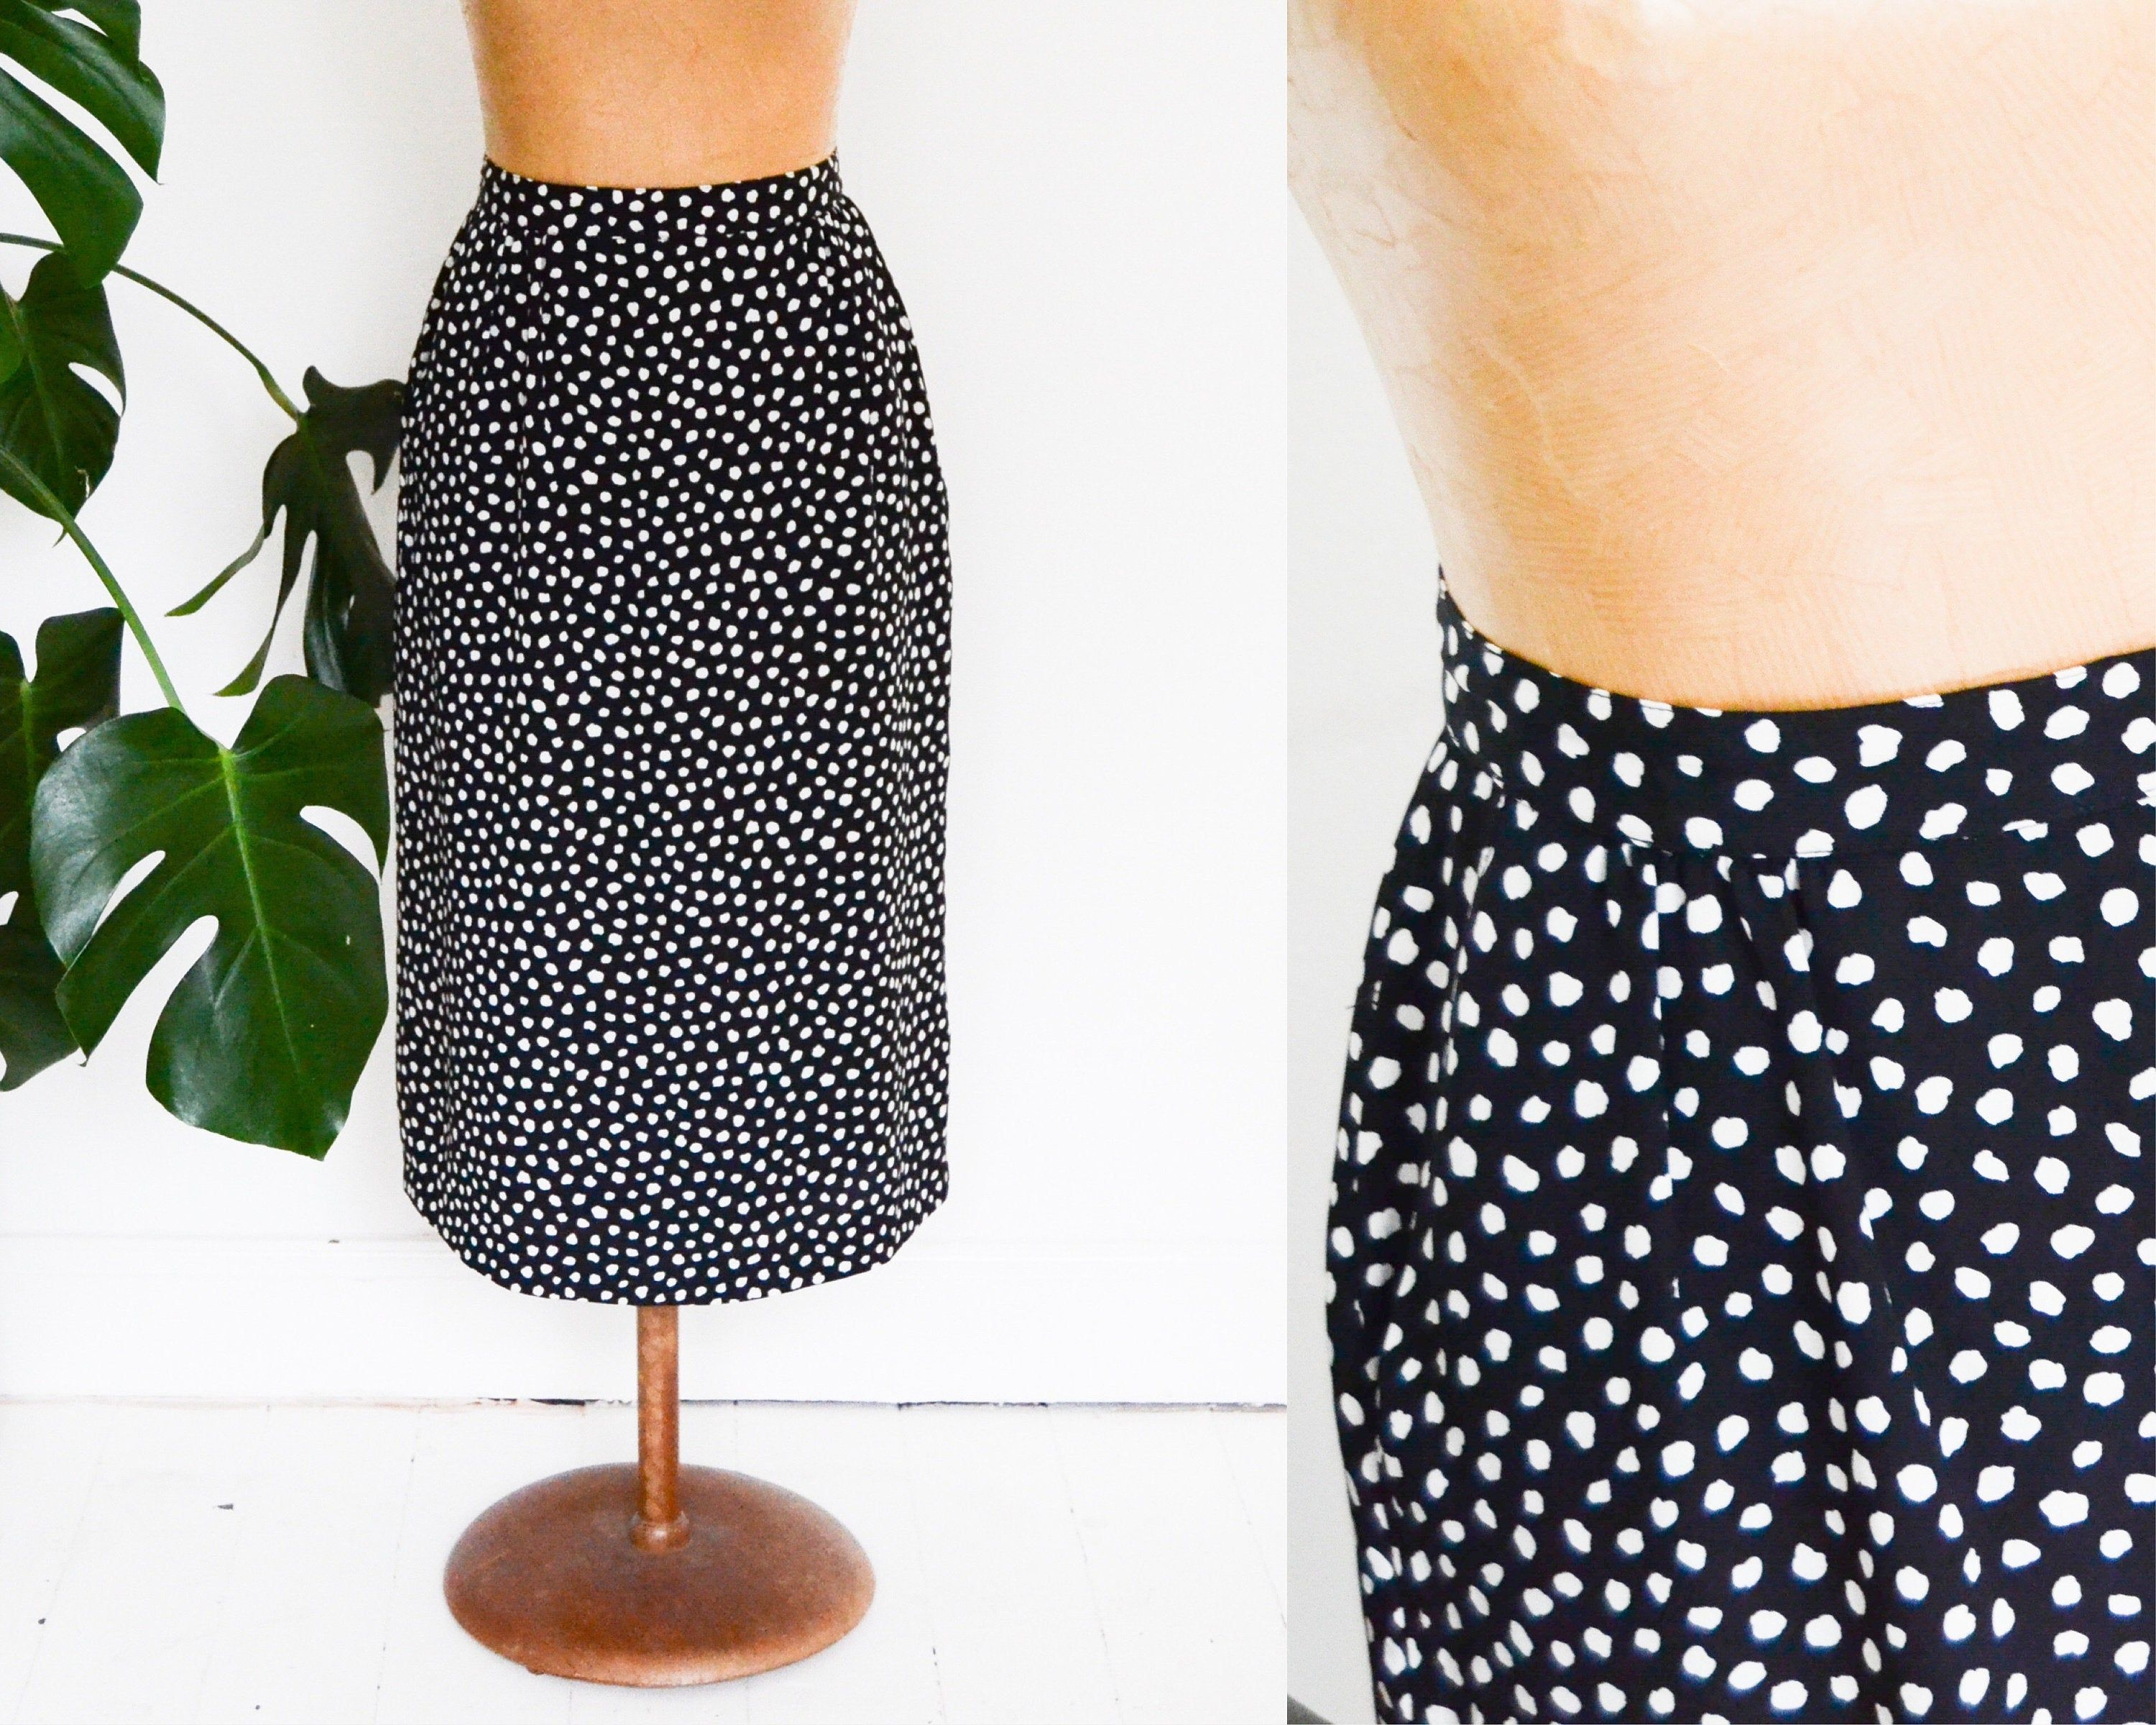 Vintage Polka Dot Pencil Skirt Size 10 Black And White Skirt